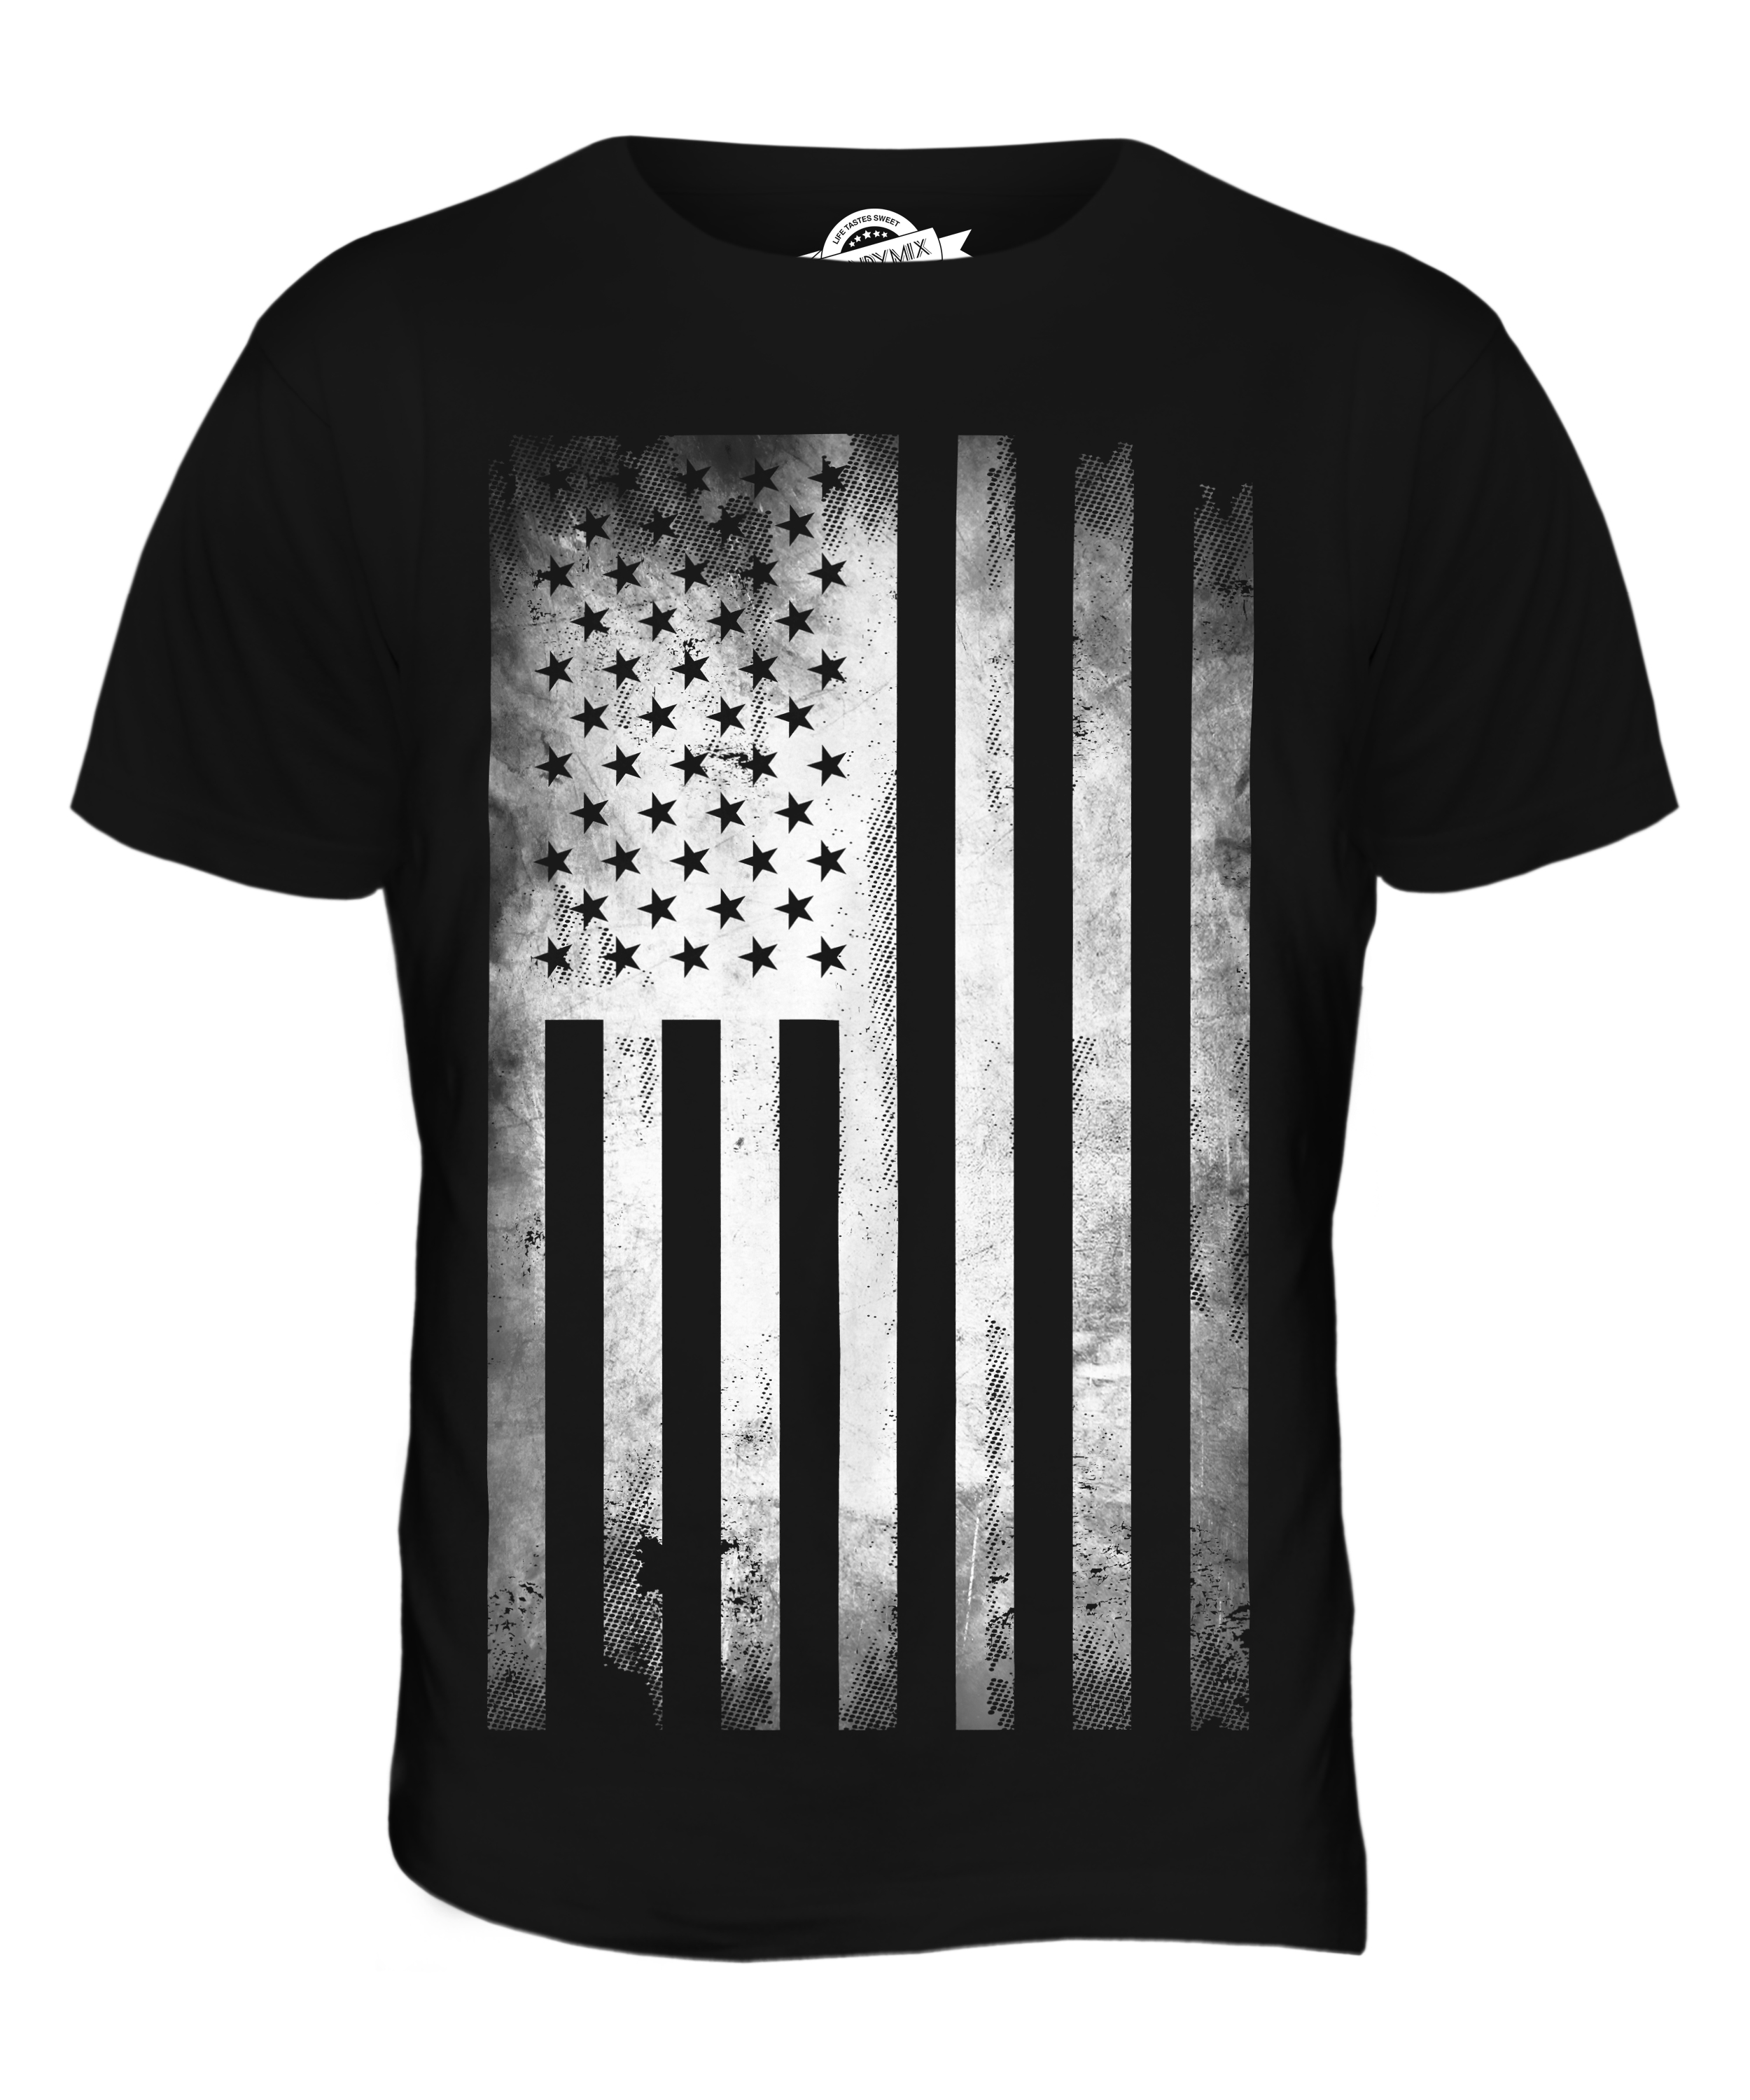 Stars and stripes faded print mens fashion t shirt top for Mens shirt with stars